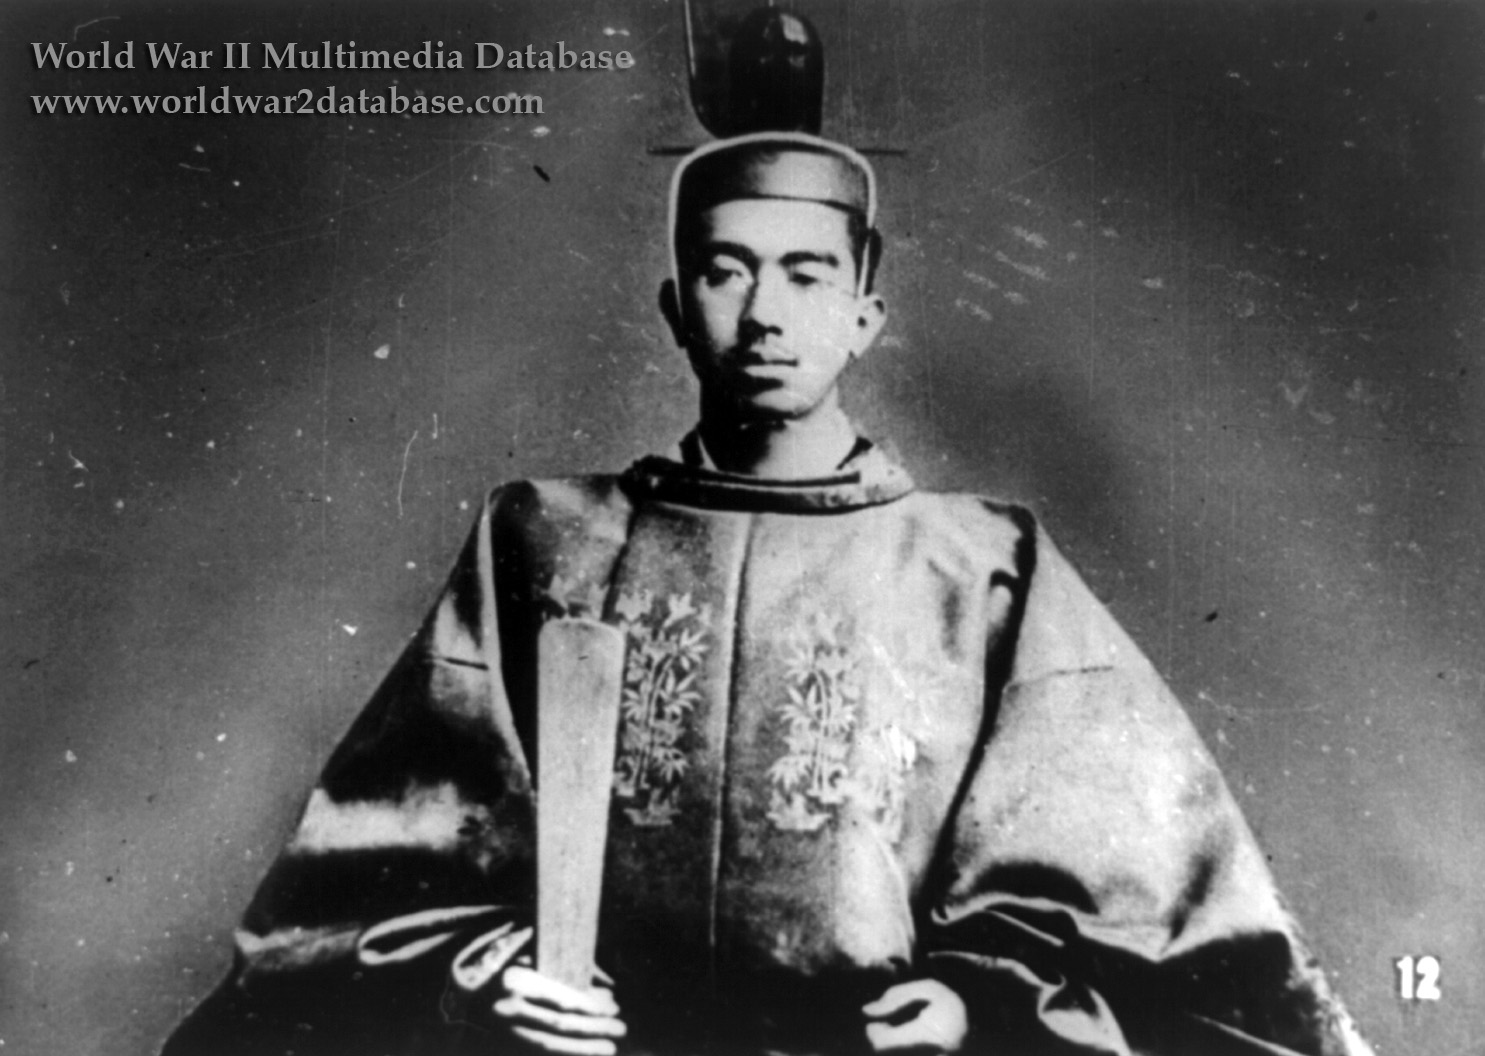 emperor hirohito Emperor hirohito was a capable and intelligent leader though shy and reclusive, he was intelligent and serious, and kept himself informed of political and military activities.